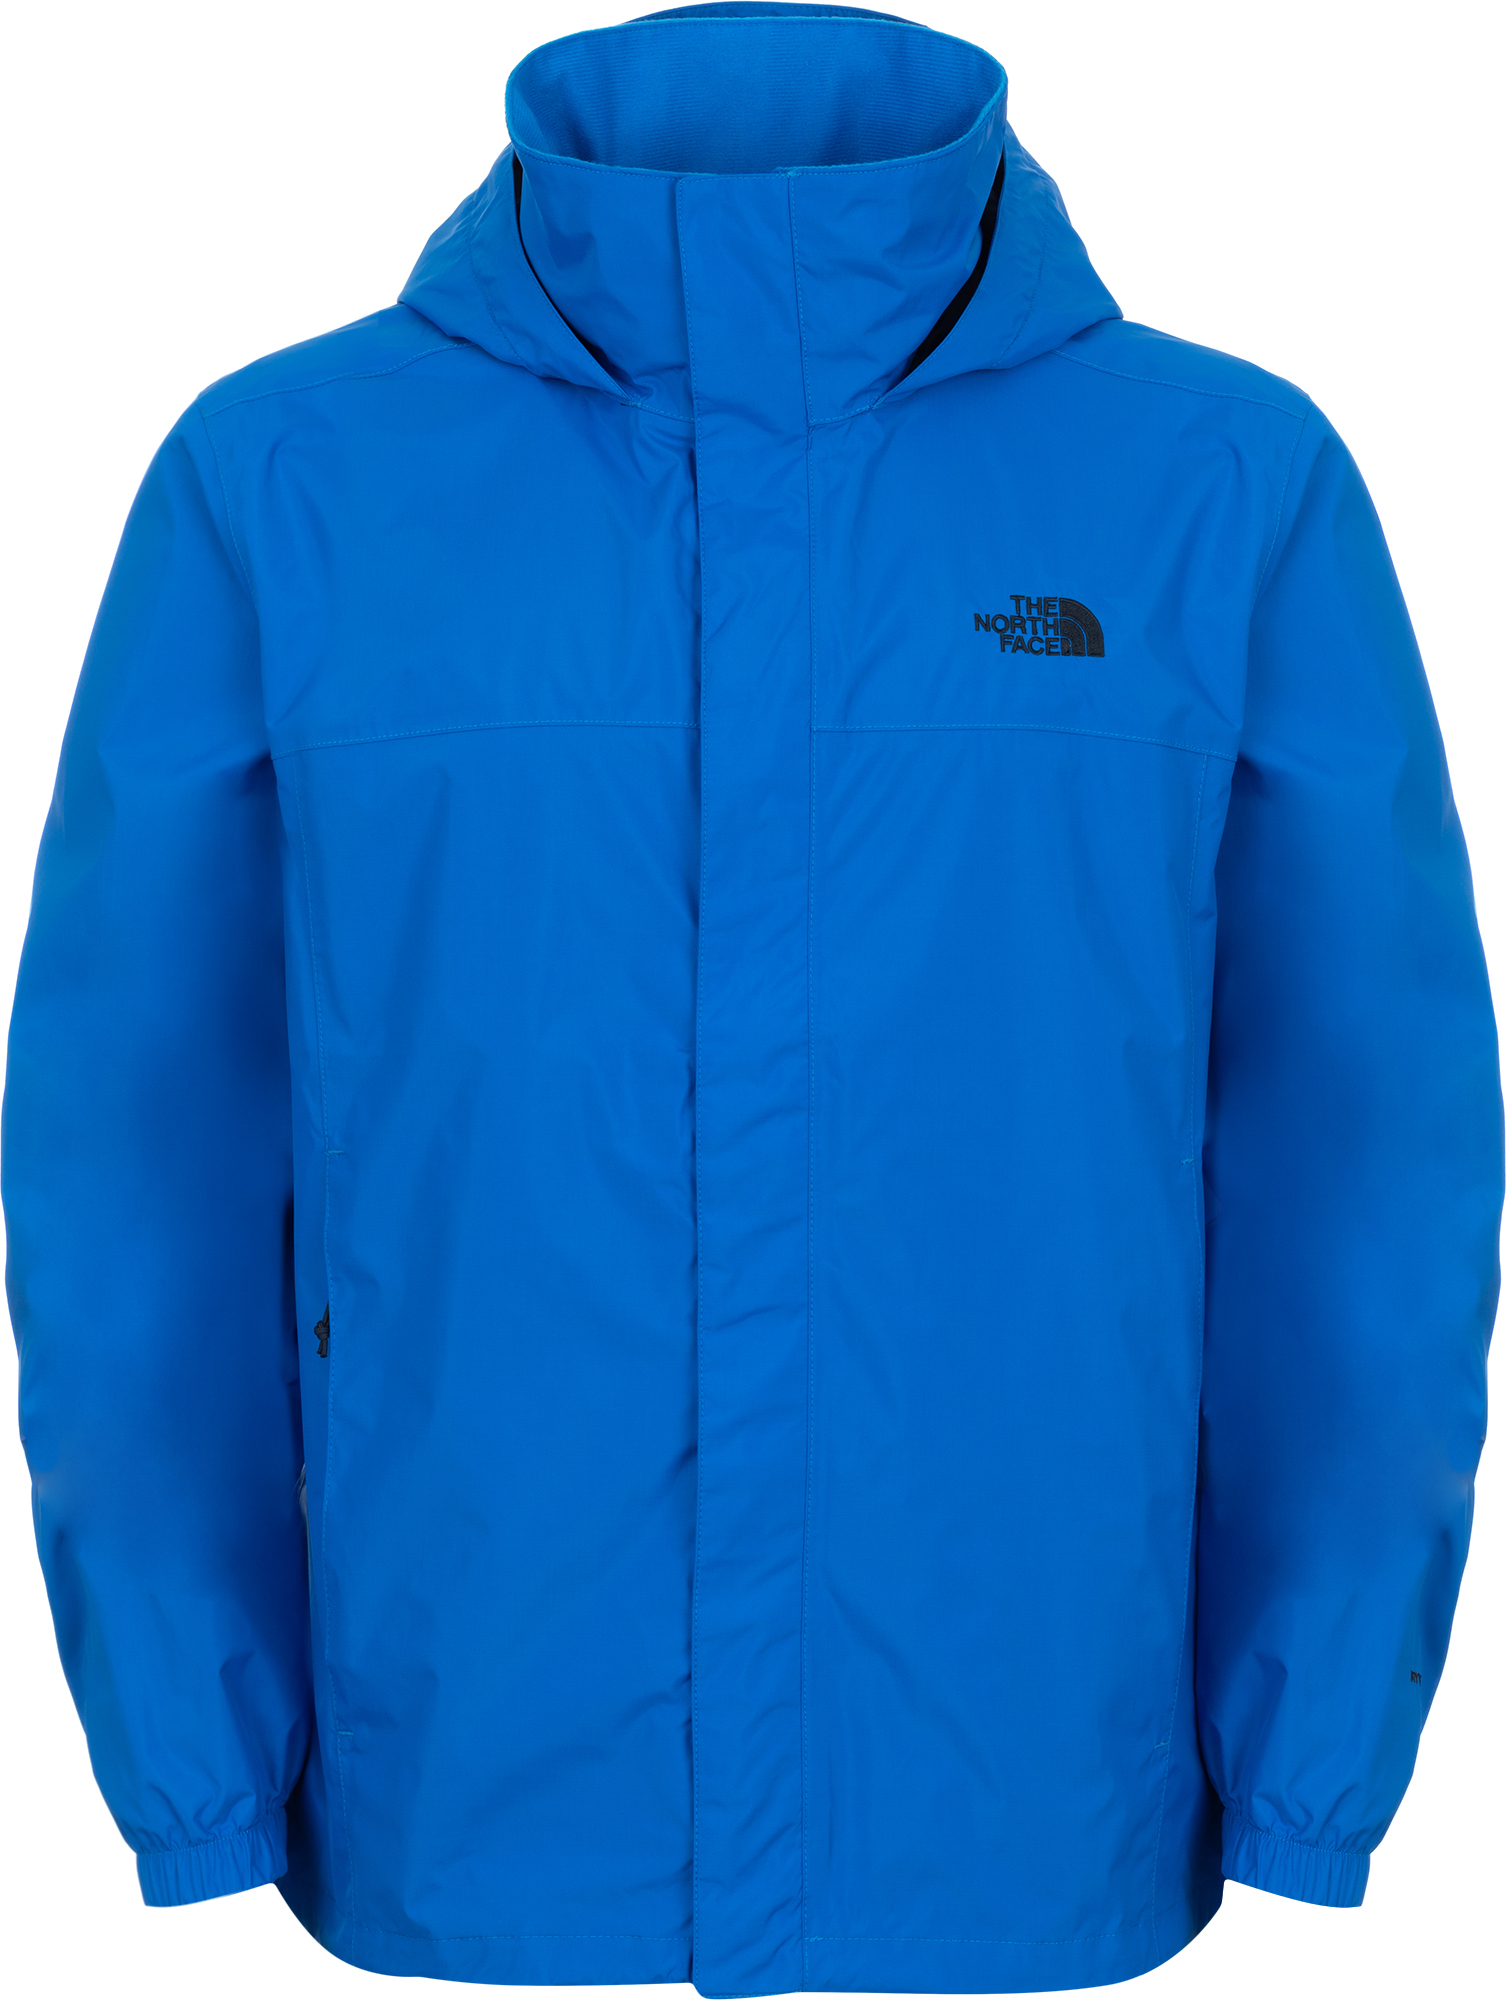 The North Face Ветровка мужская The North Face Resolve 2, размер 50 цена